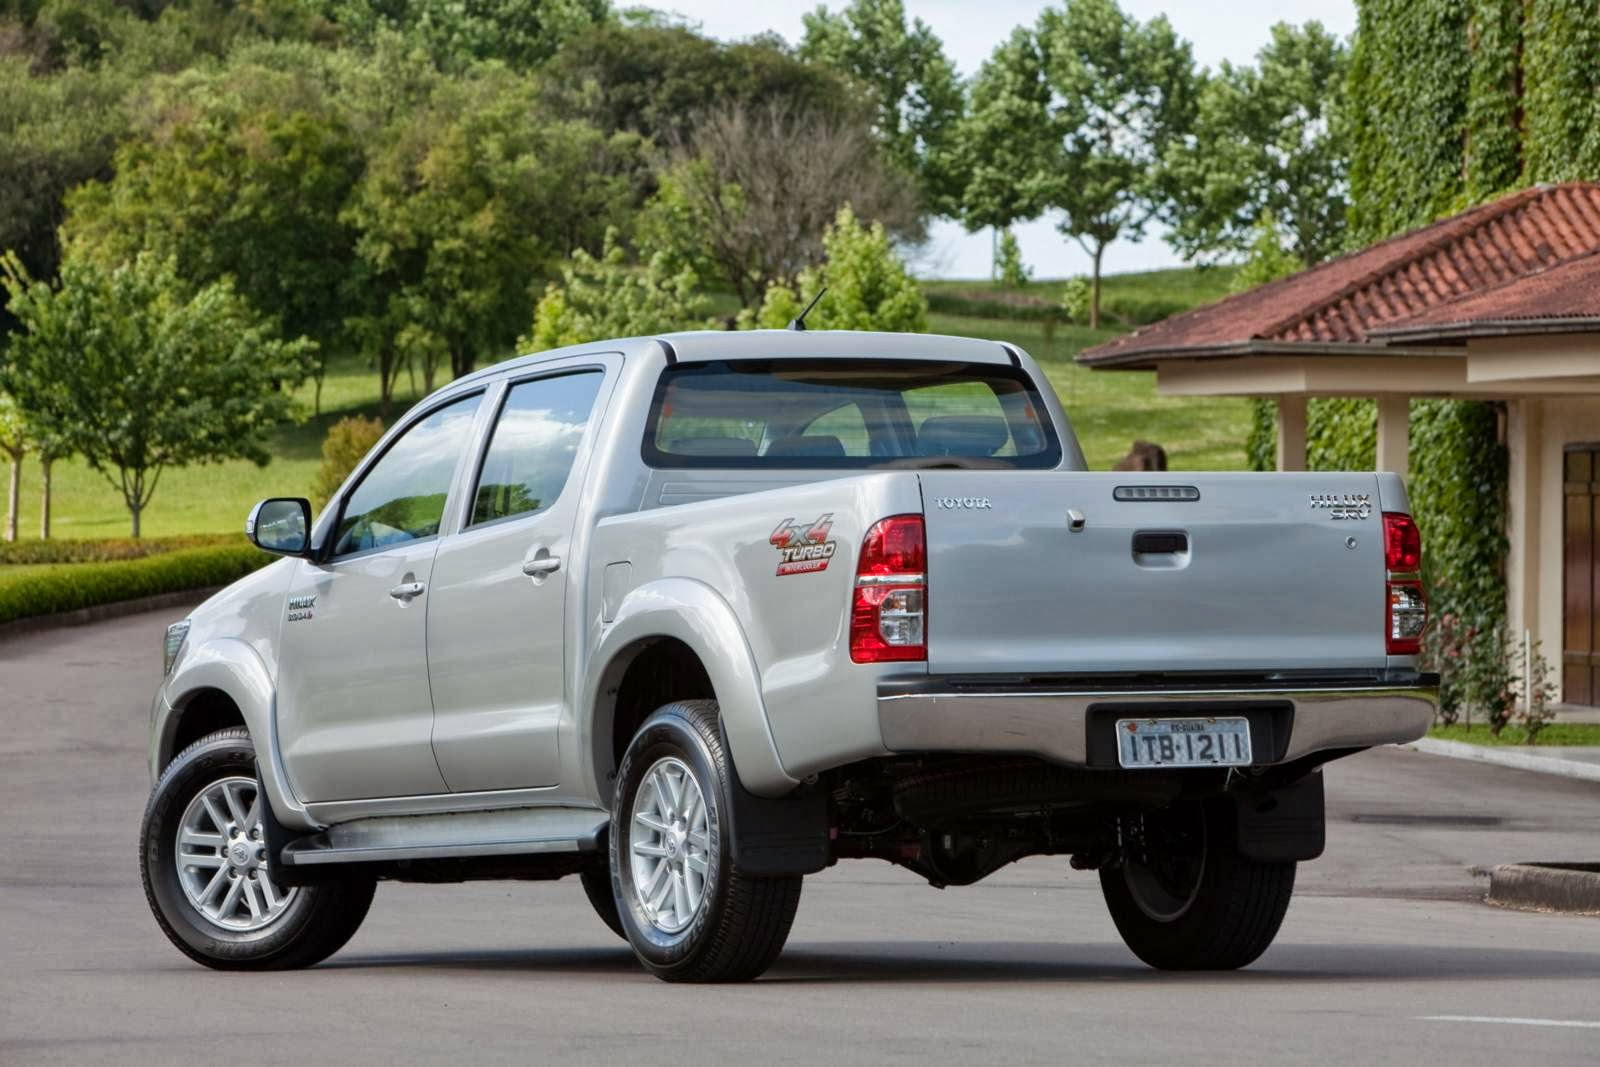 Toyota Hilux Recall